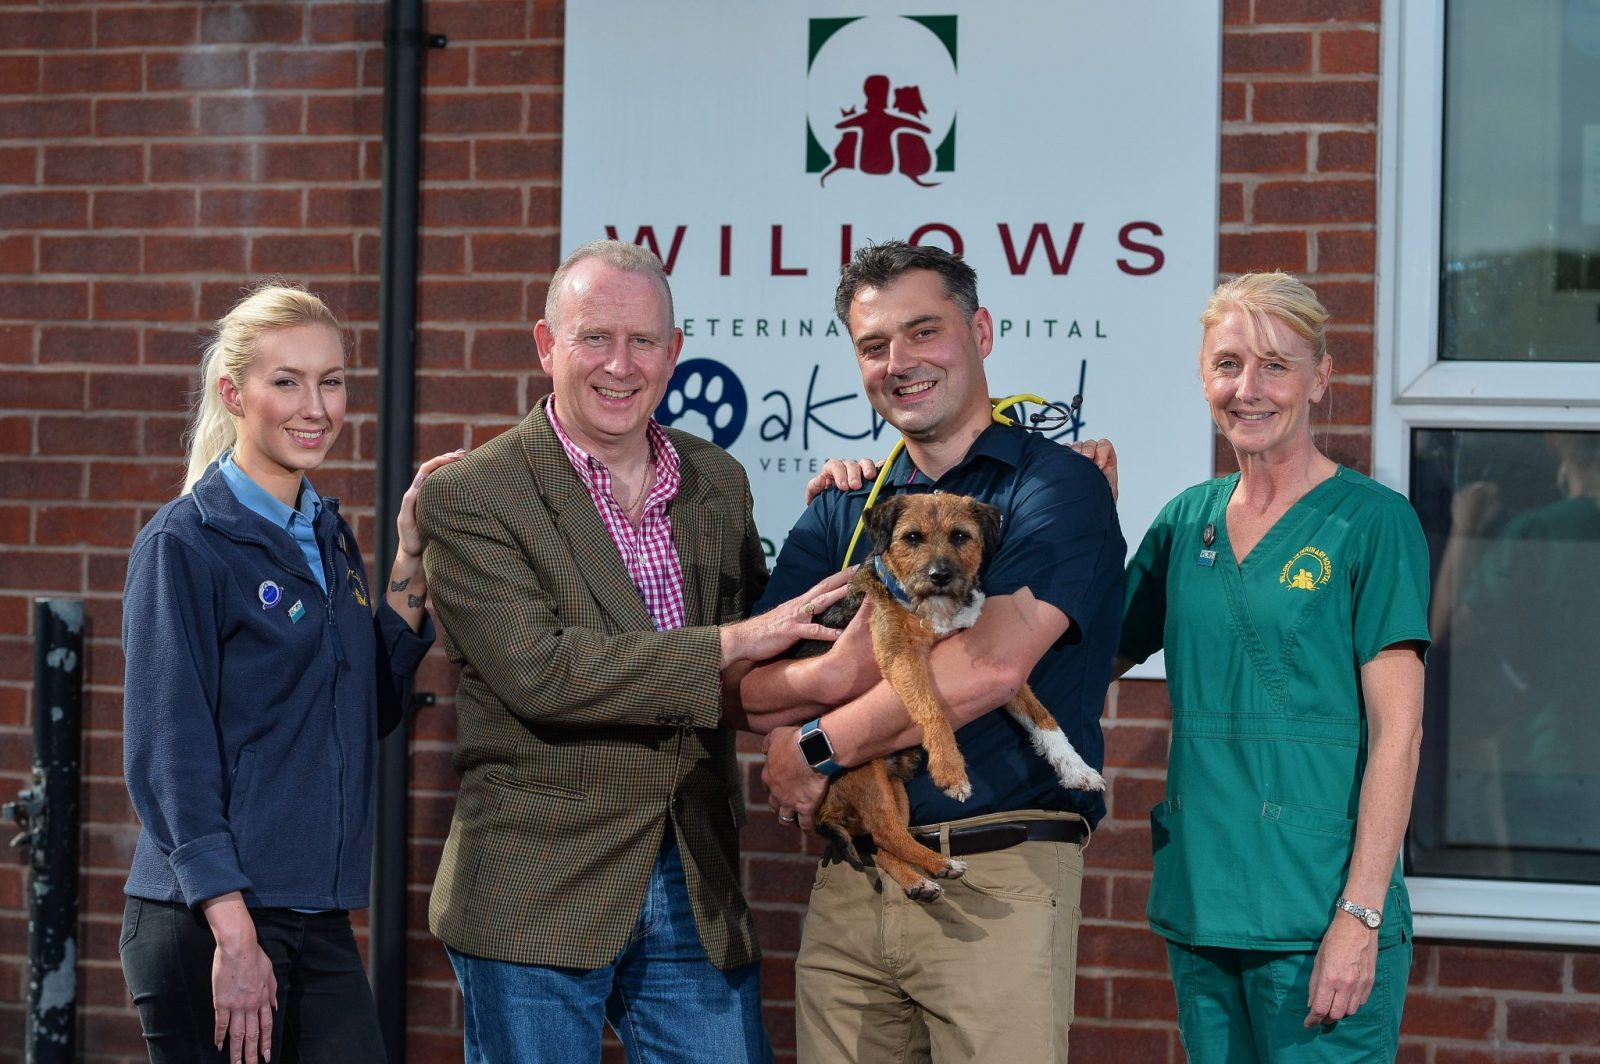 Pictured from left to right are; Larissa Domini, Willows Veterinary Hospital receptionist, Graham Evans MP, Bruce Waddell, Clinical Director at Willows Veterinary Hospital (first opinion), and Clare Sutton, Head Veterinary Nurse at Willows Veterinary Hospital, with Alfie.